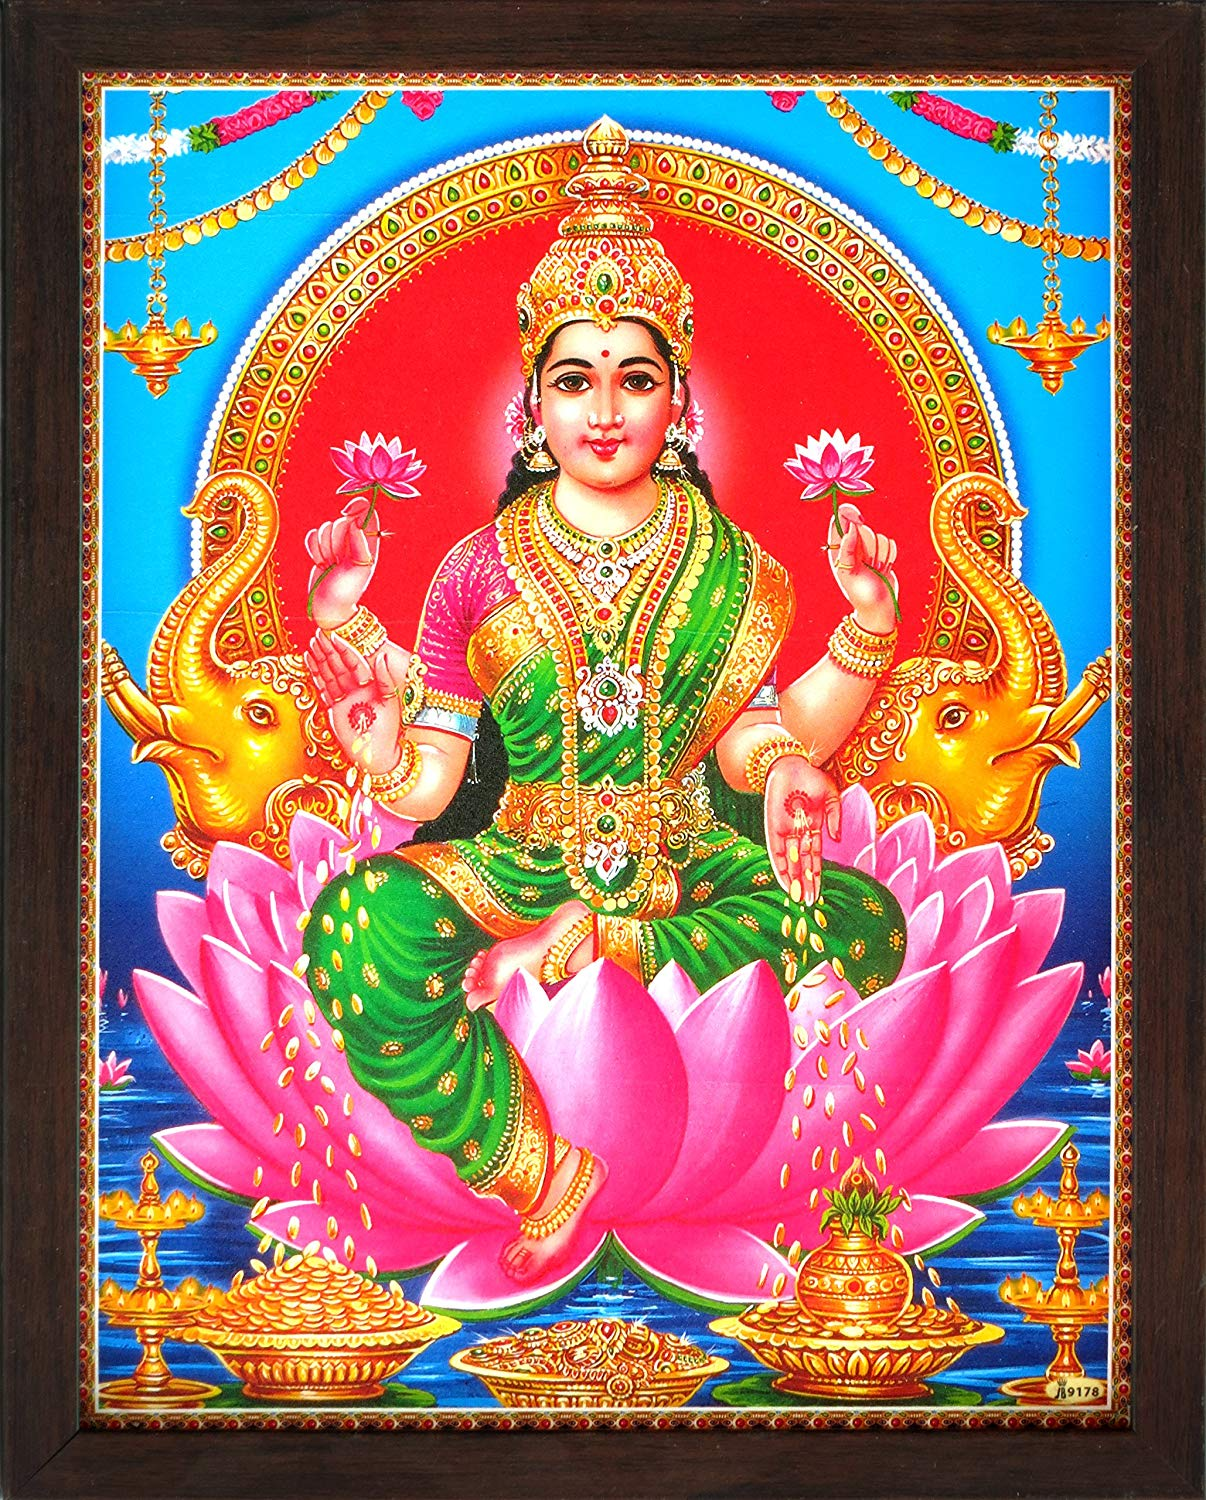 HandicraftStore Holy Indian Hindi Religious Goddess Maa Lakshmi Showering Money, A Indian Hindu Religious Poster Painting with Frame